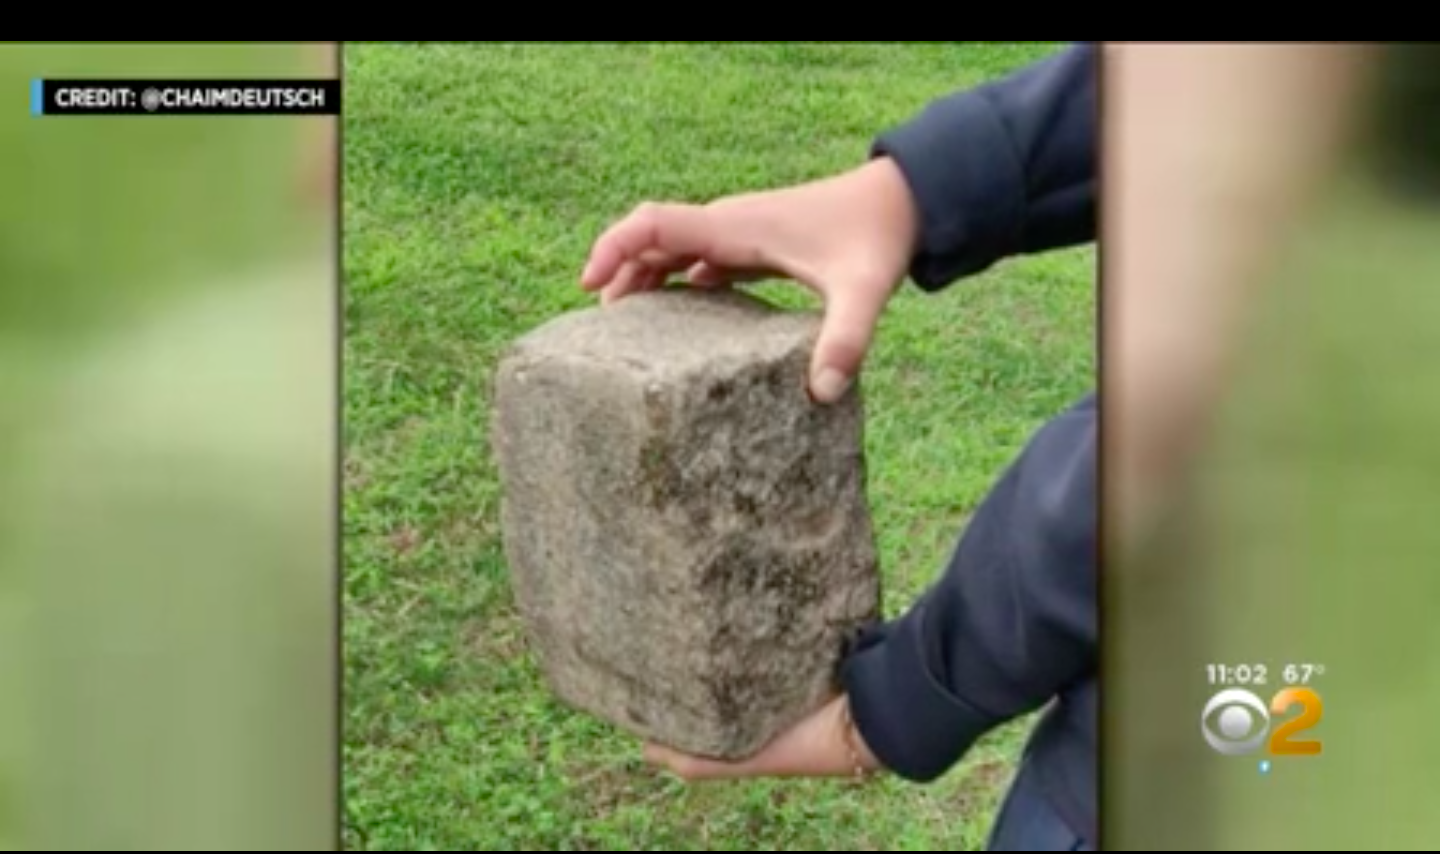 Stone used to attack Gopin/CBS2 screengrab